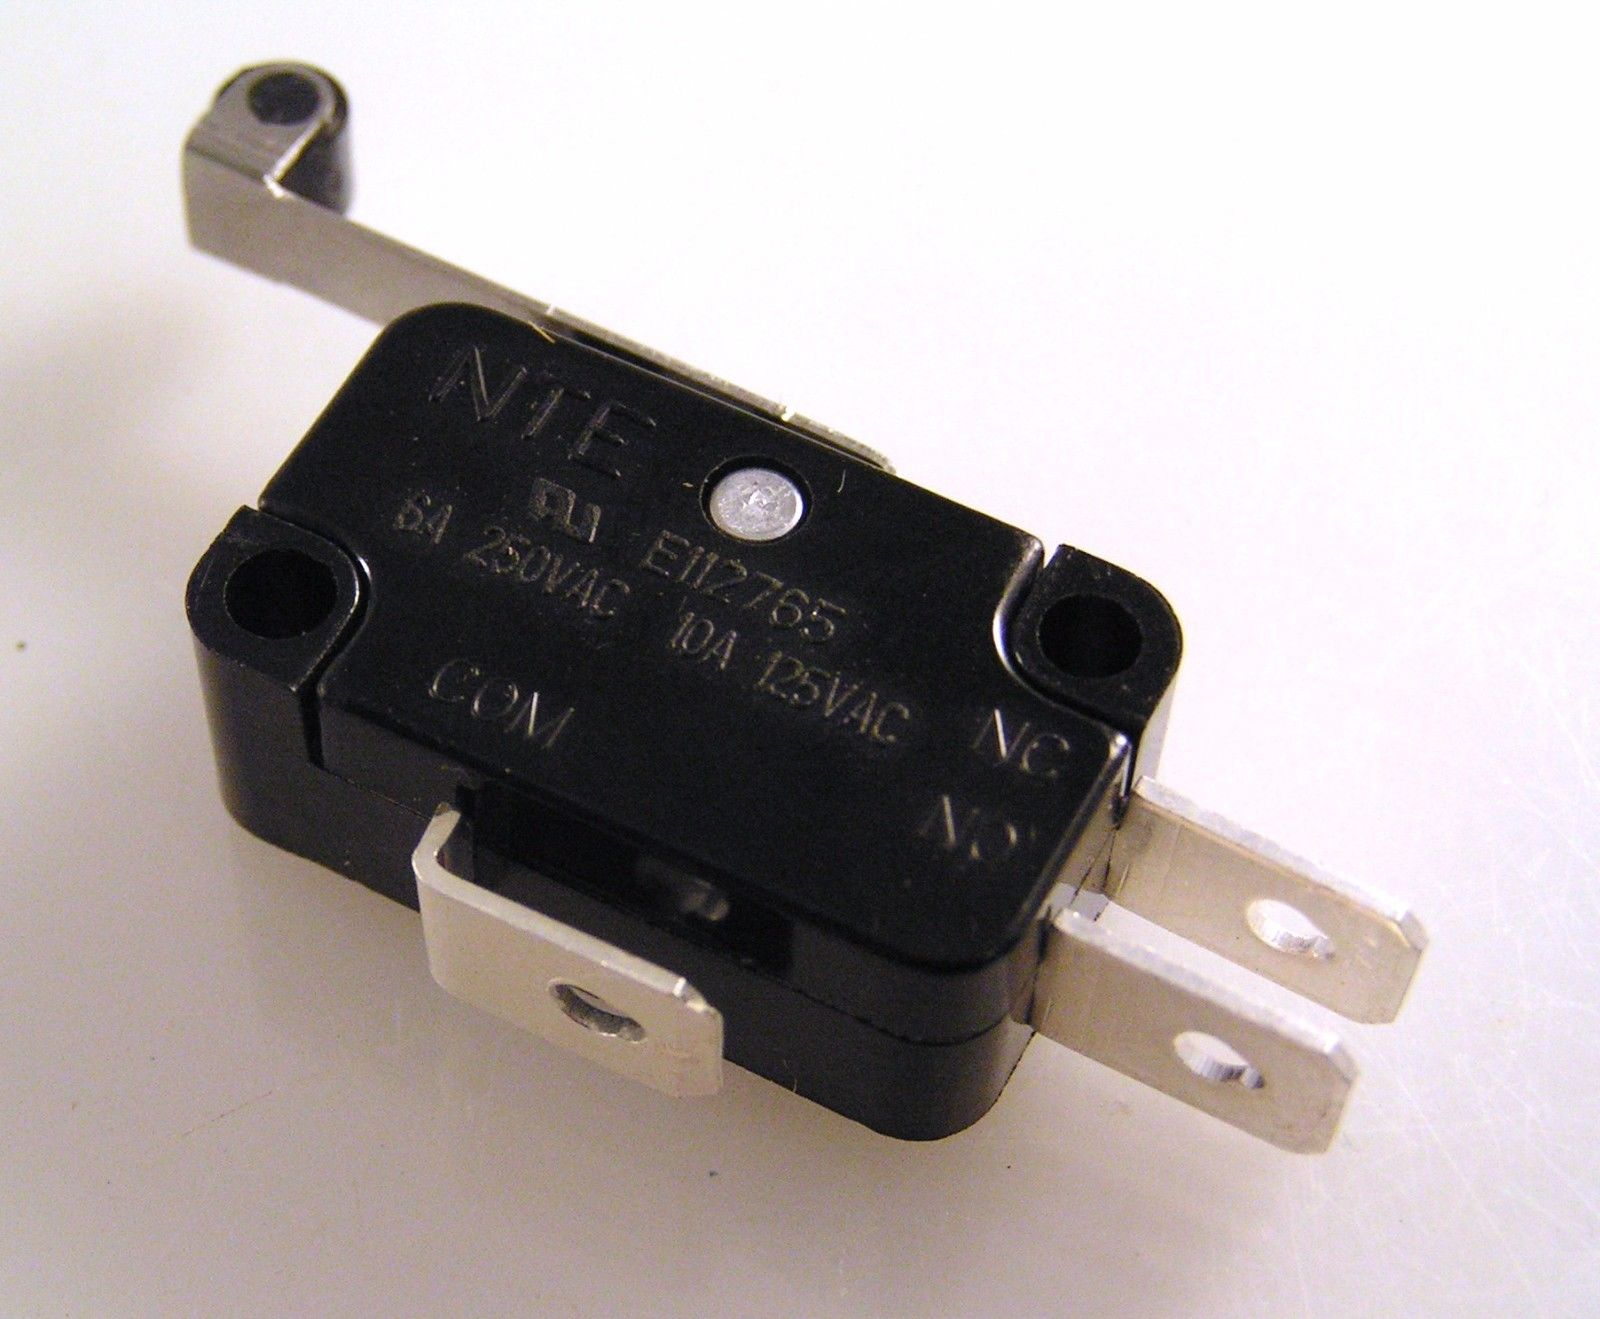 Nte E112765 Changeover Microswitch With Lever Roller 6a 250v V3r Om0617 1 Piece